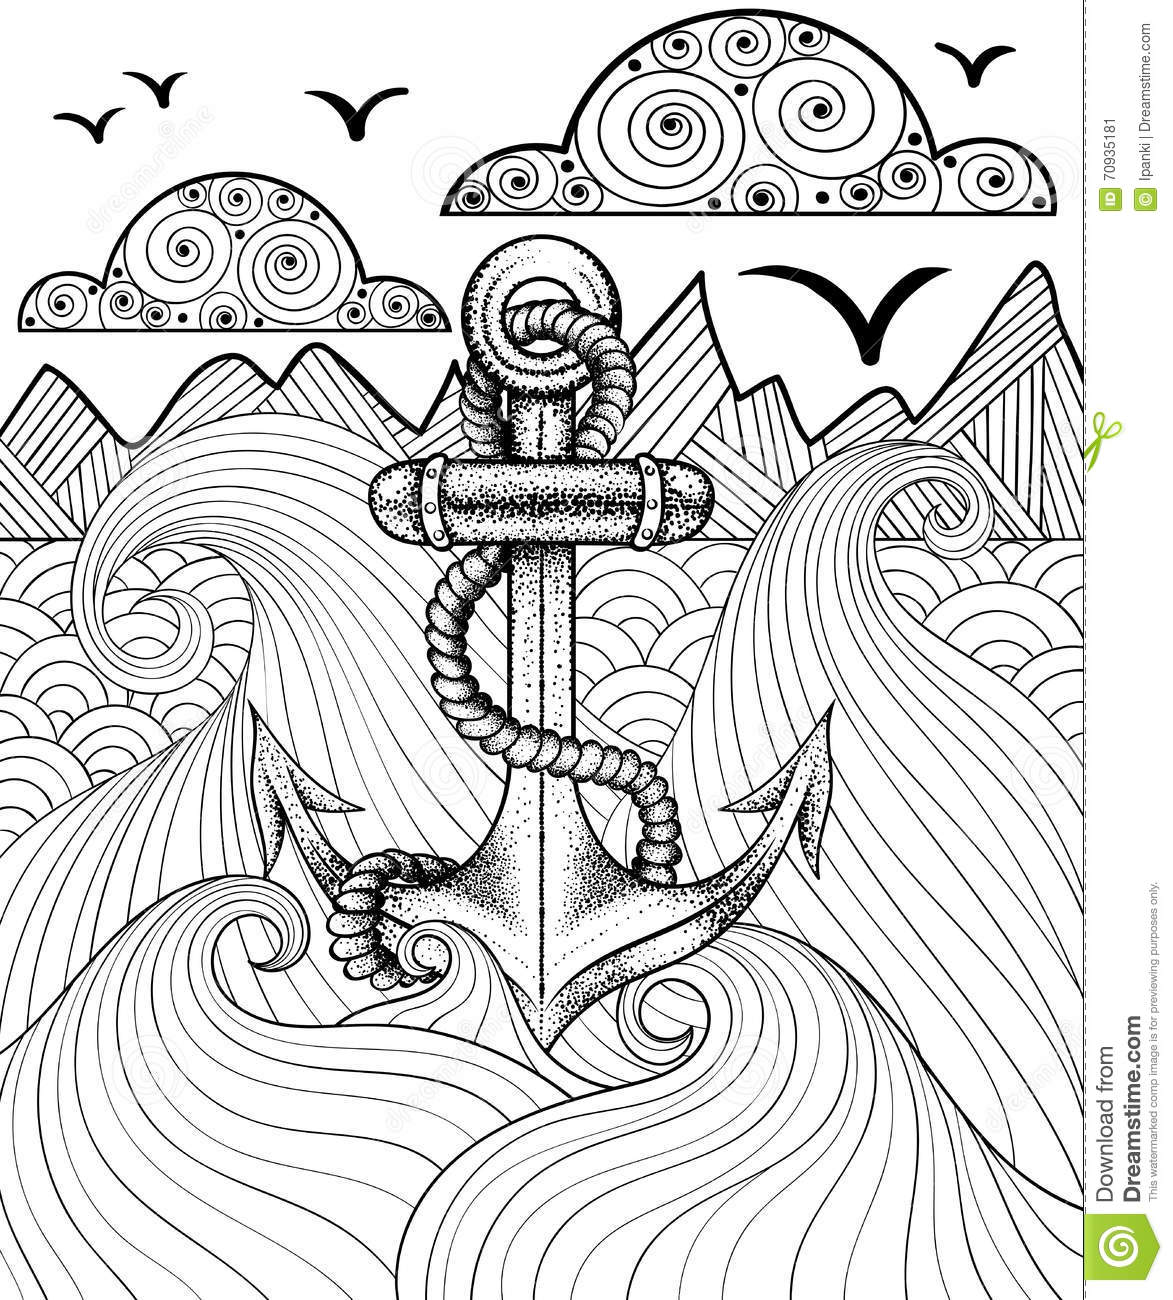 Vector Zentangle Print For Adult Coloring Page. Hand Drawn ...